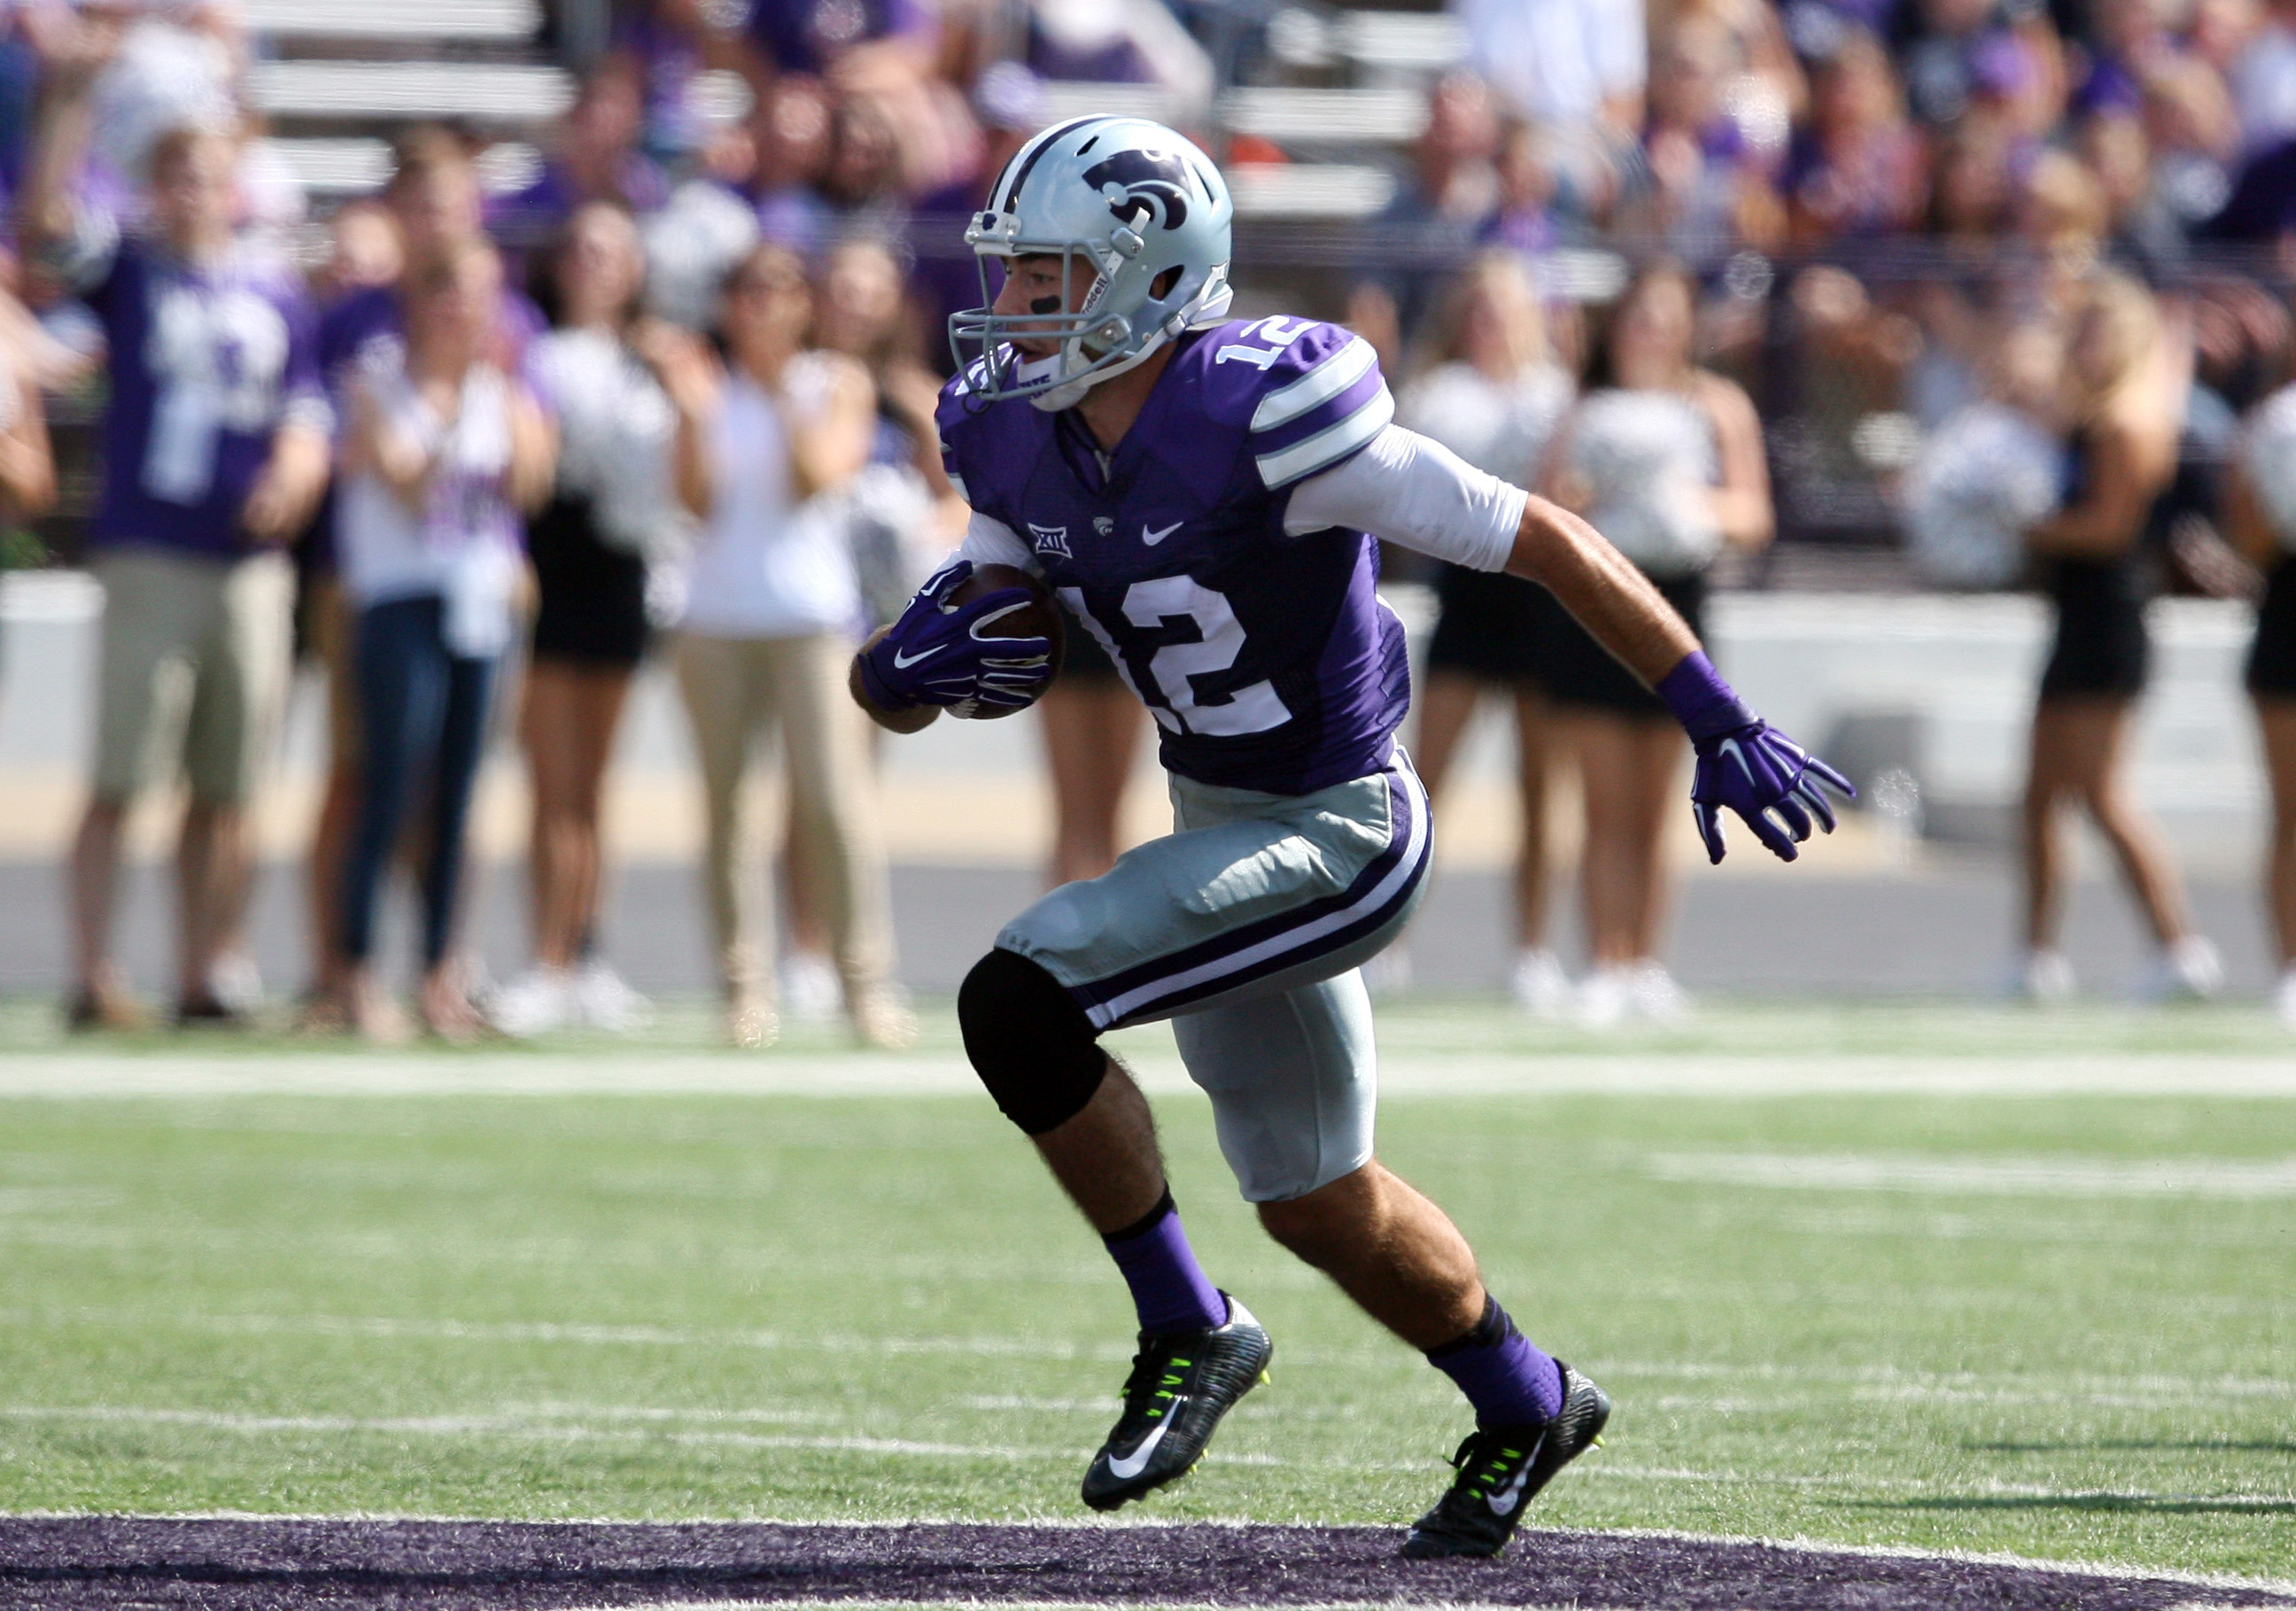 So far, this is Stanton Weber's only career reception. Will he break through as a wide receiver in his senior season?